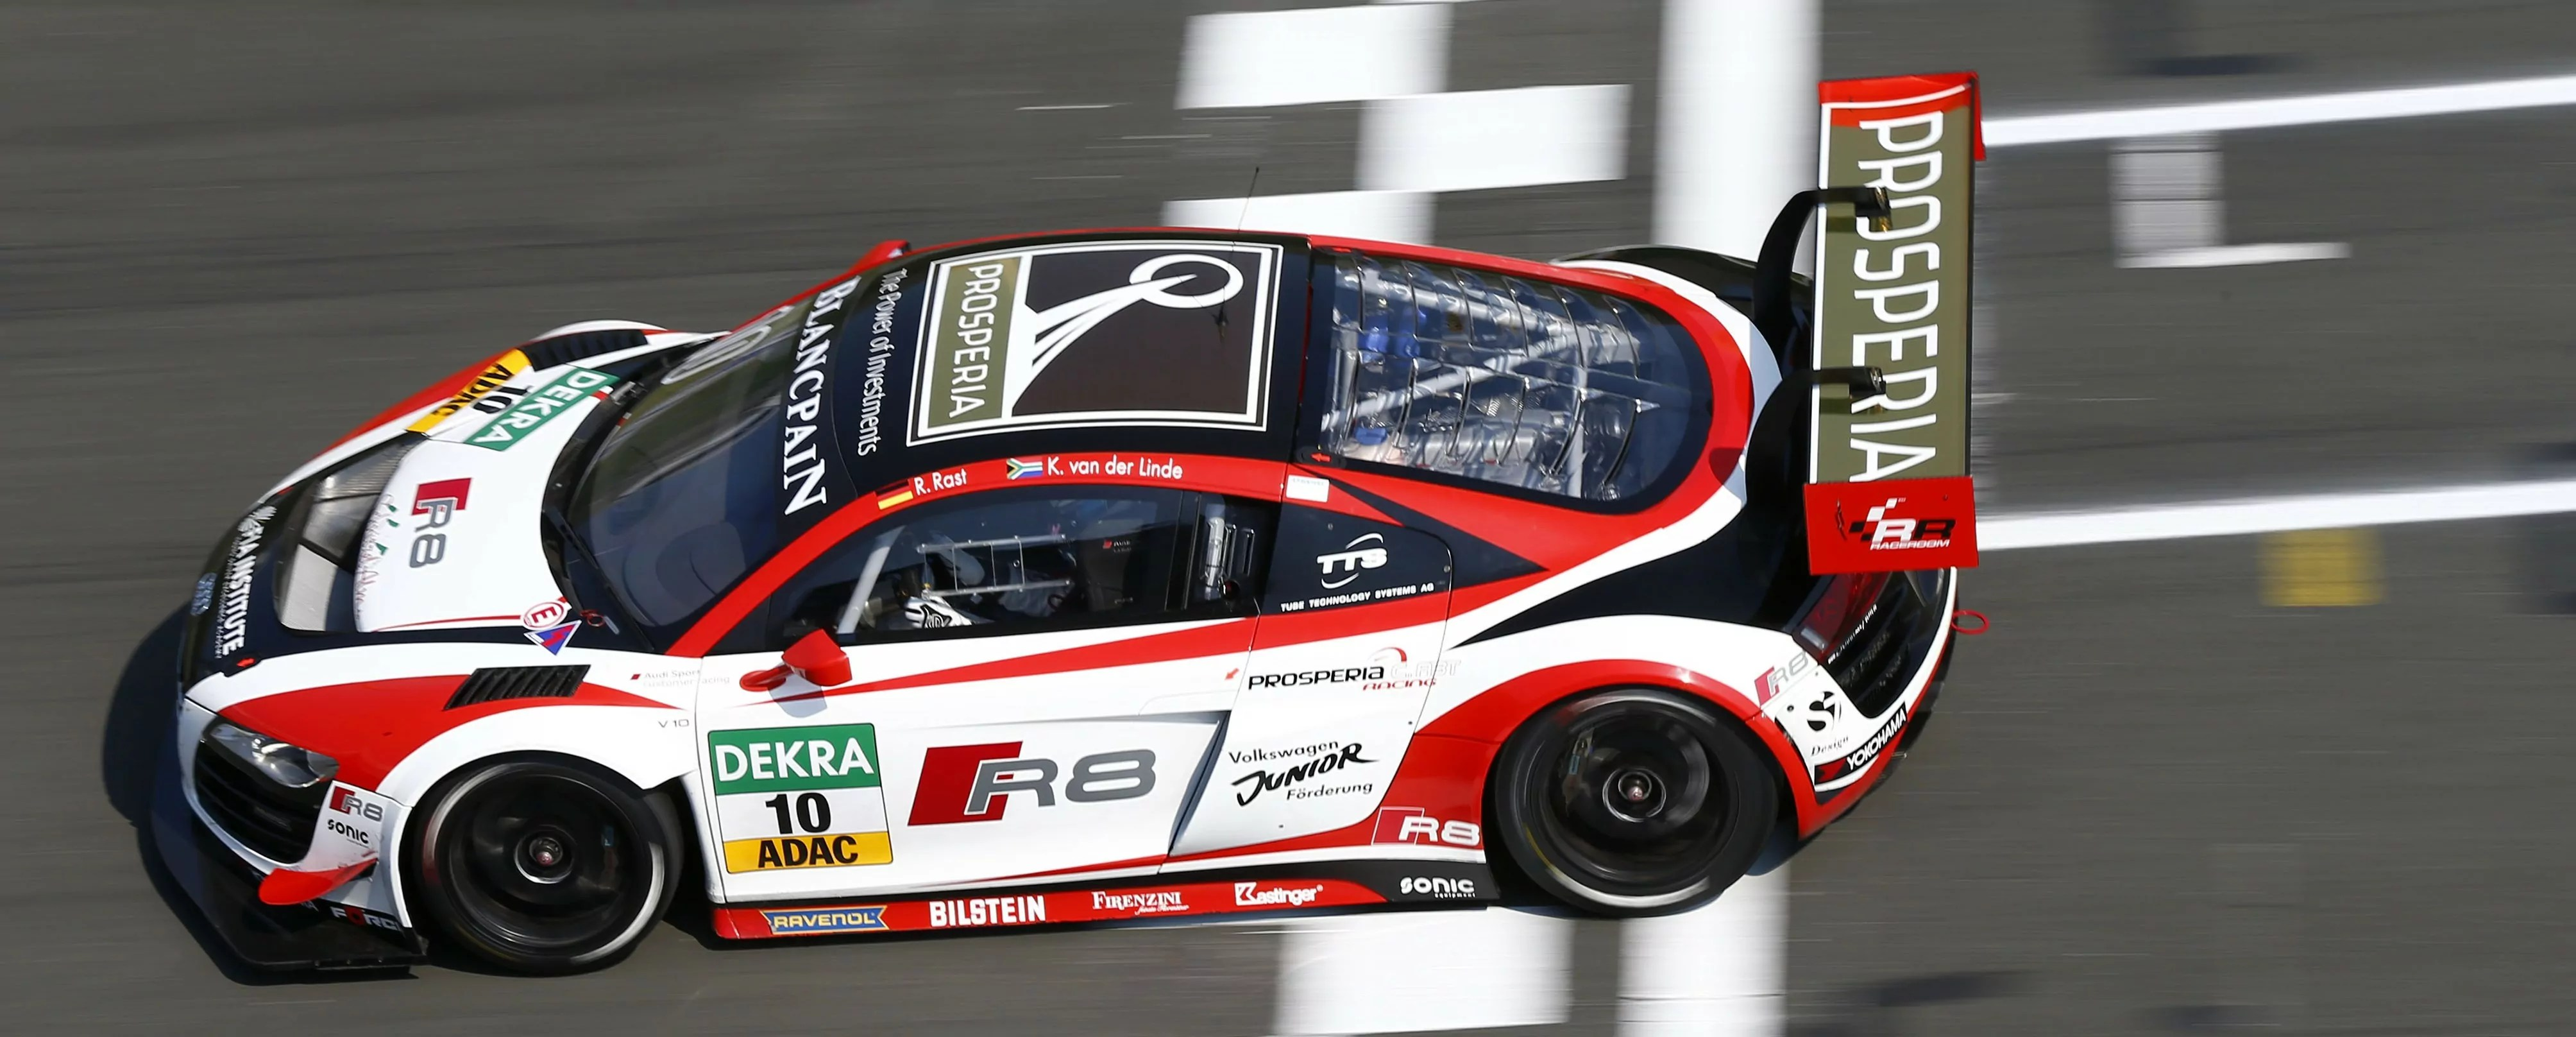 Audi gets 2014 campaign underway with double pole